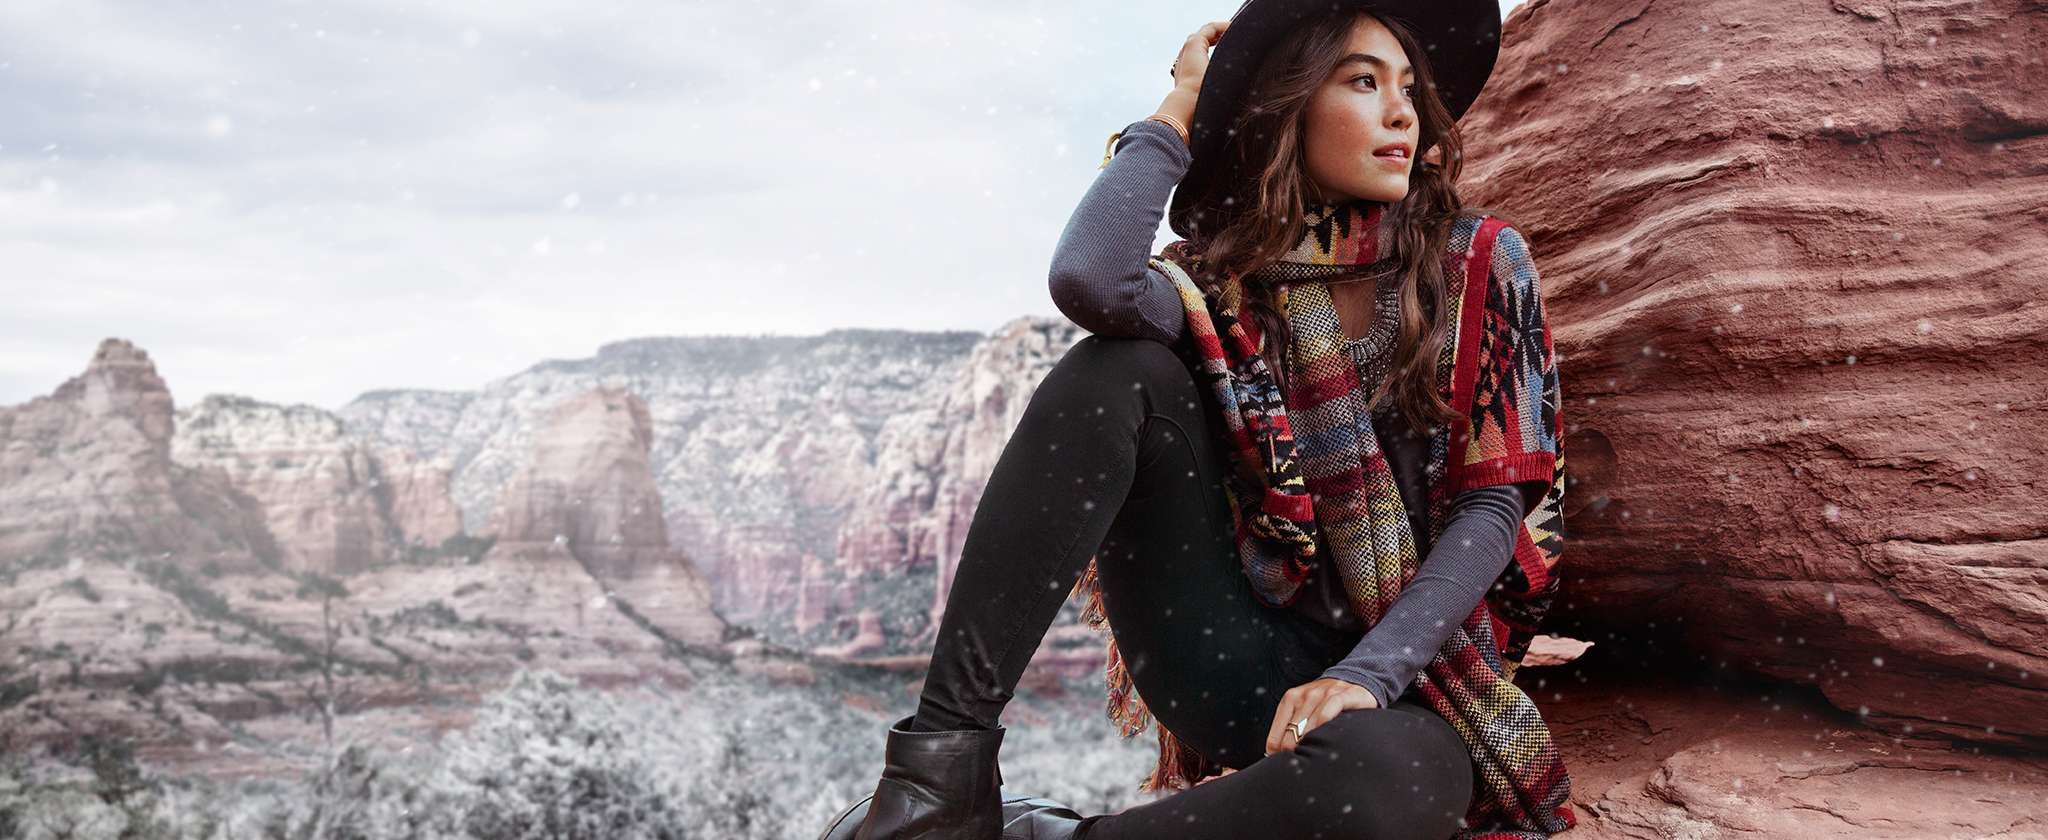 Grand Canyon In 2019 Winter Travel Outfit Winter Travel